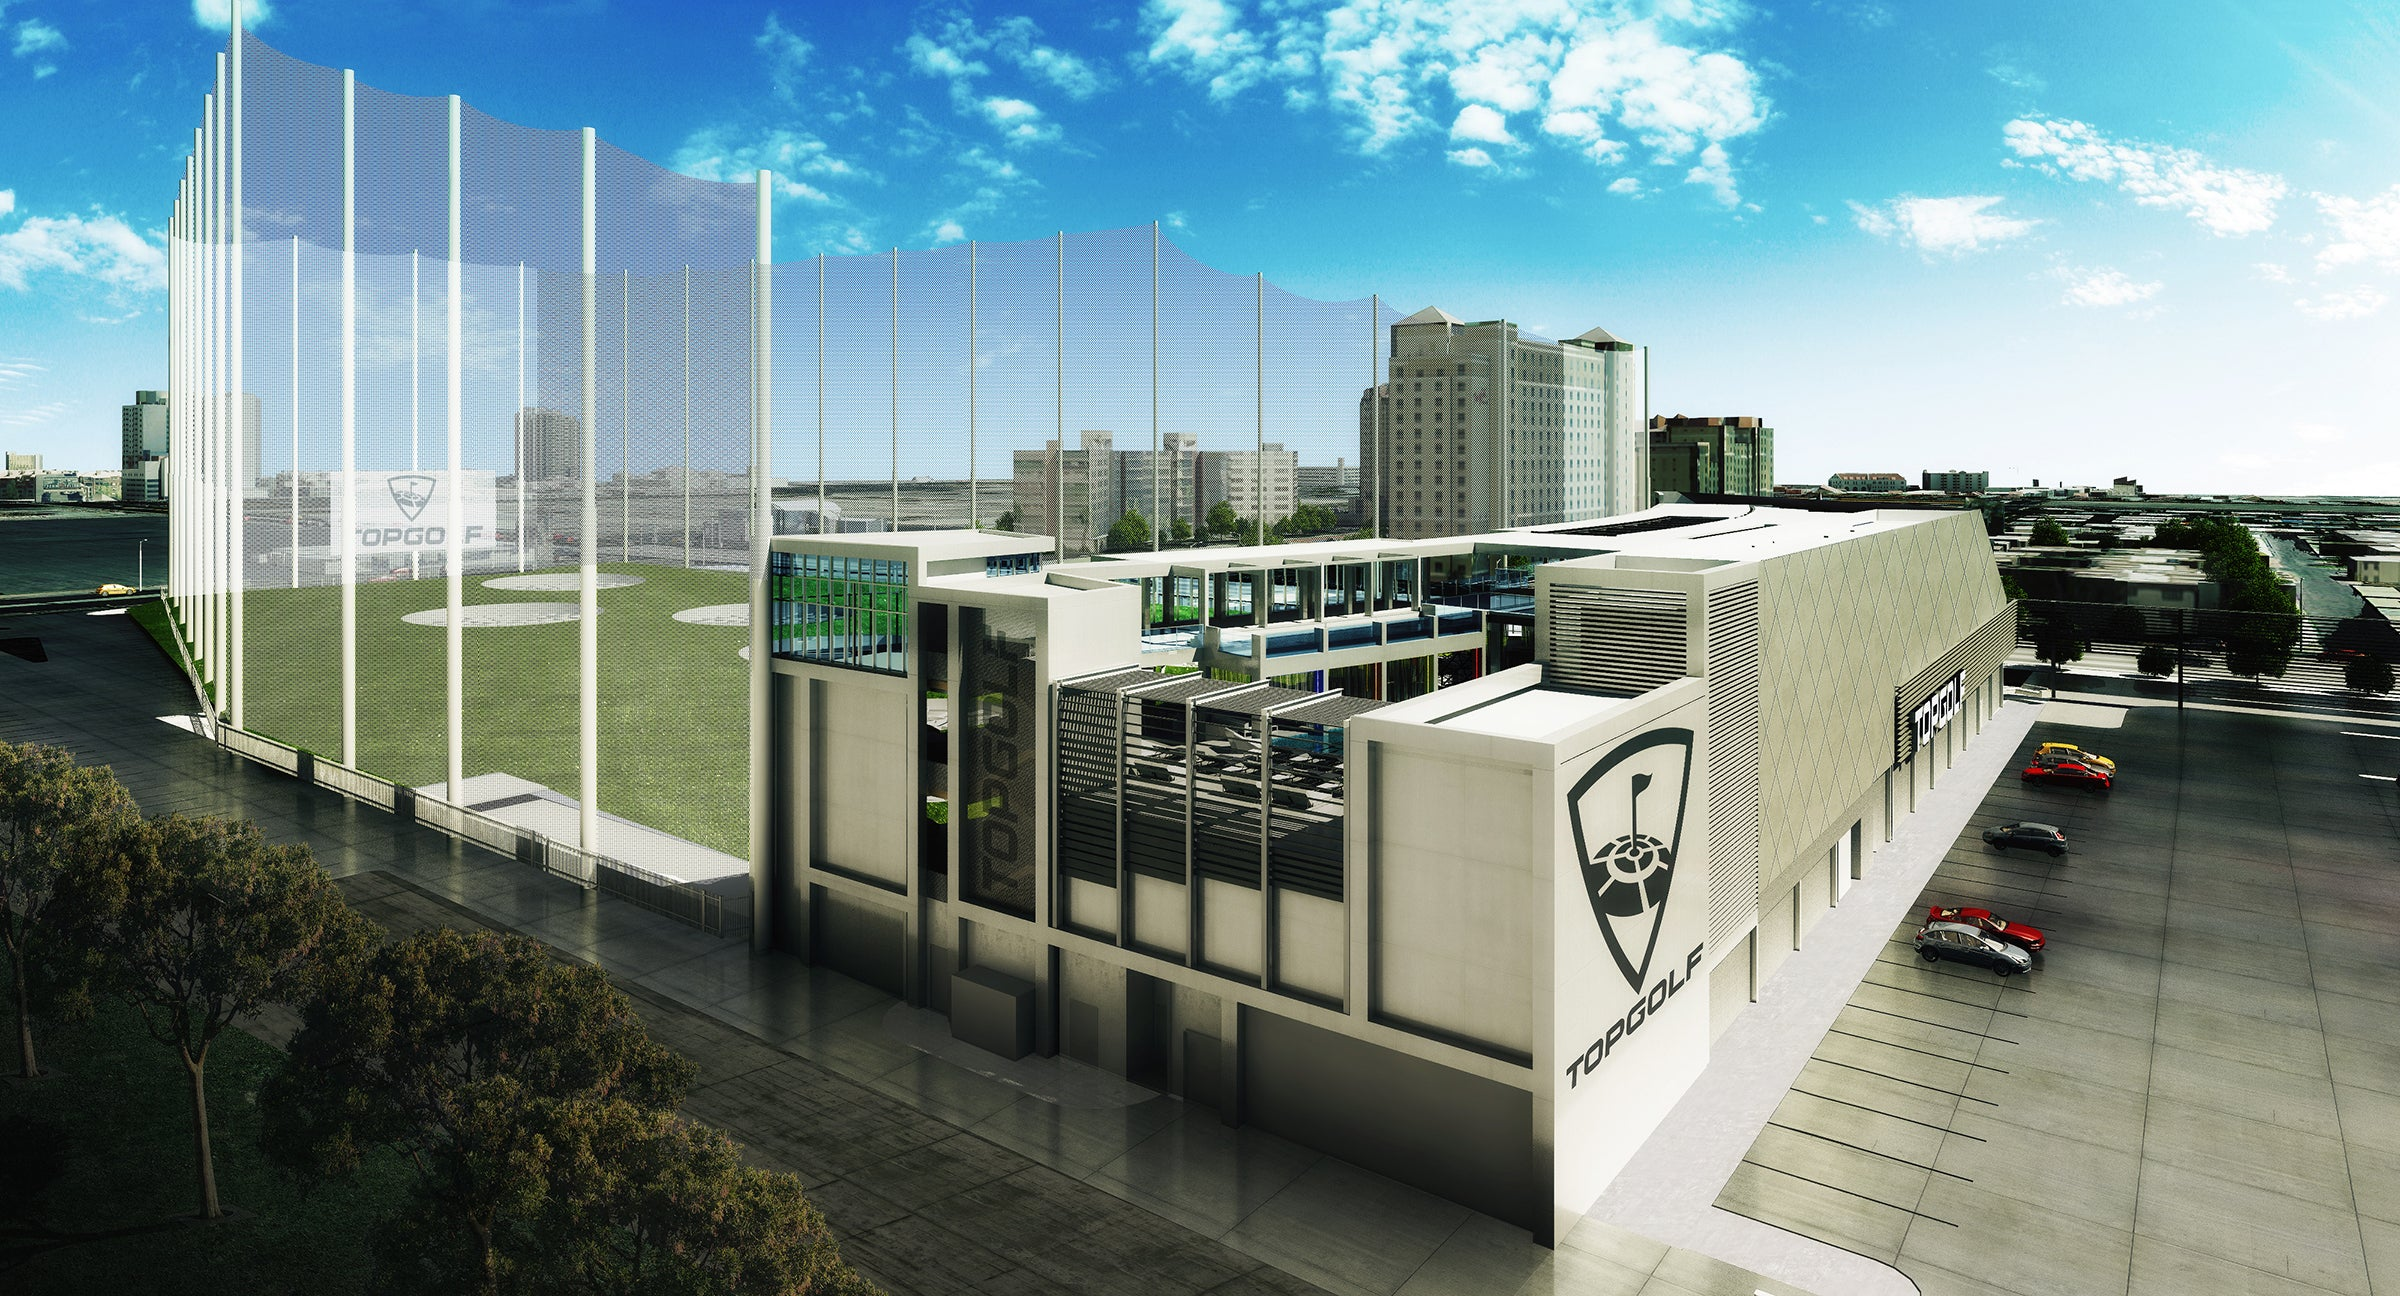 topgolf photos  the best of the ultimate driving range